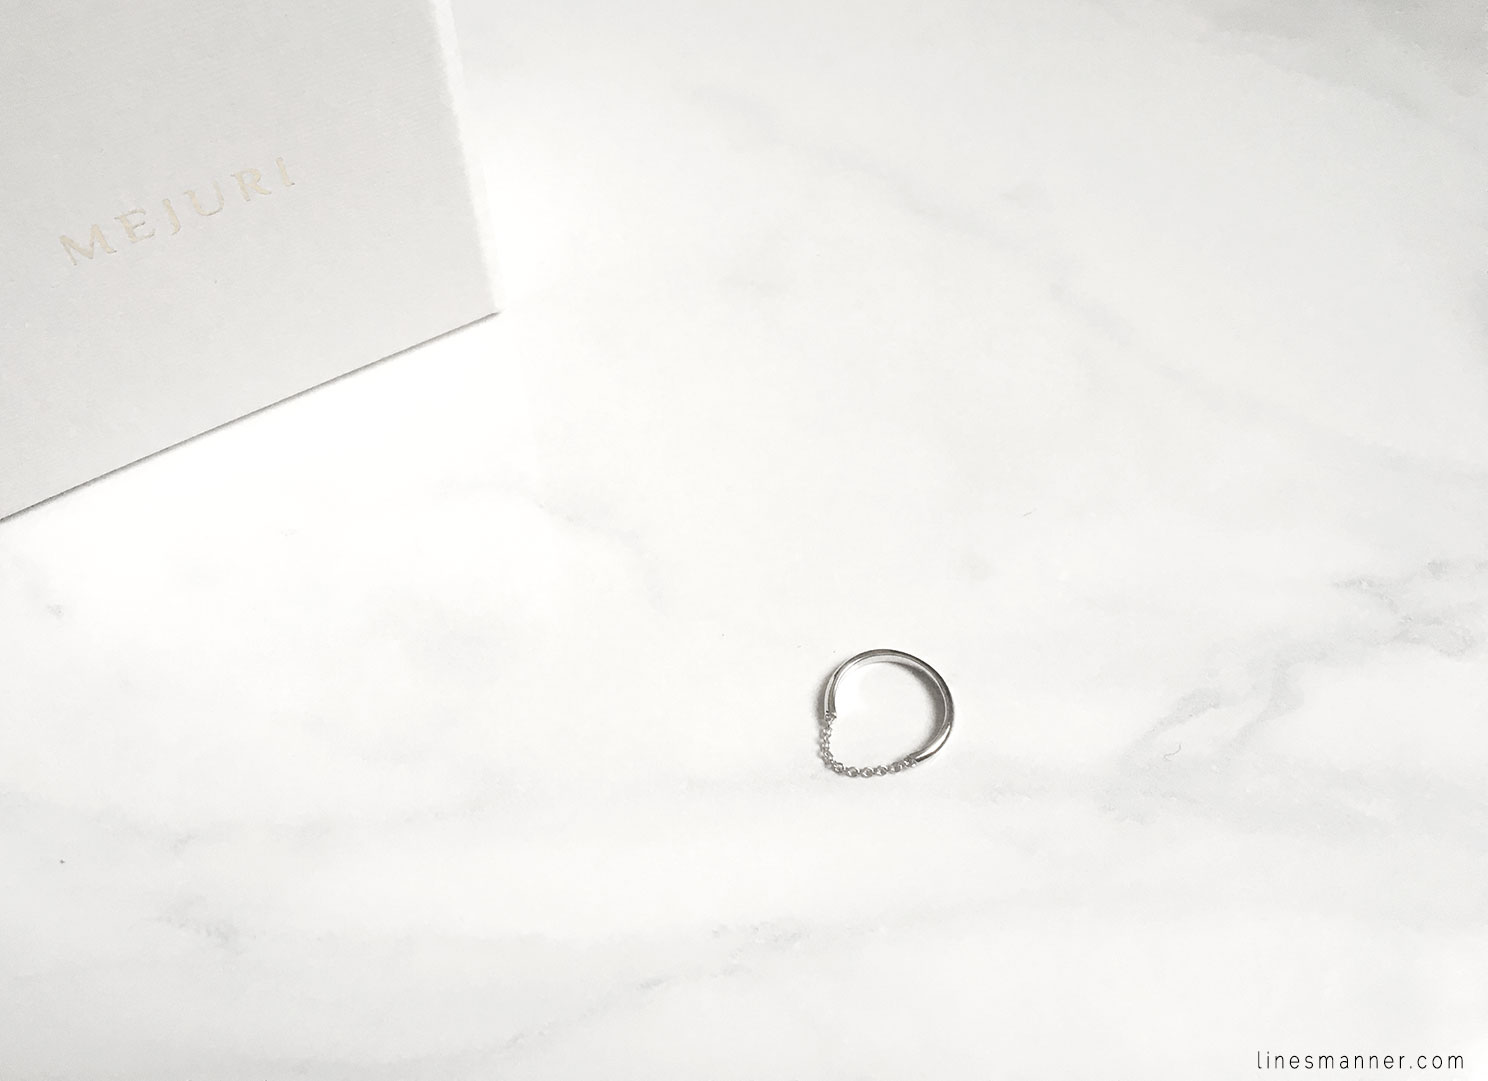 Lines-Manner-Details-Mejuri-Marble-Essentials-Minimal-Jewellery-Silver-Ring-Delicate-Monochrome-Simplicity-6